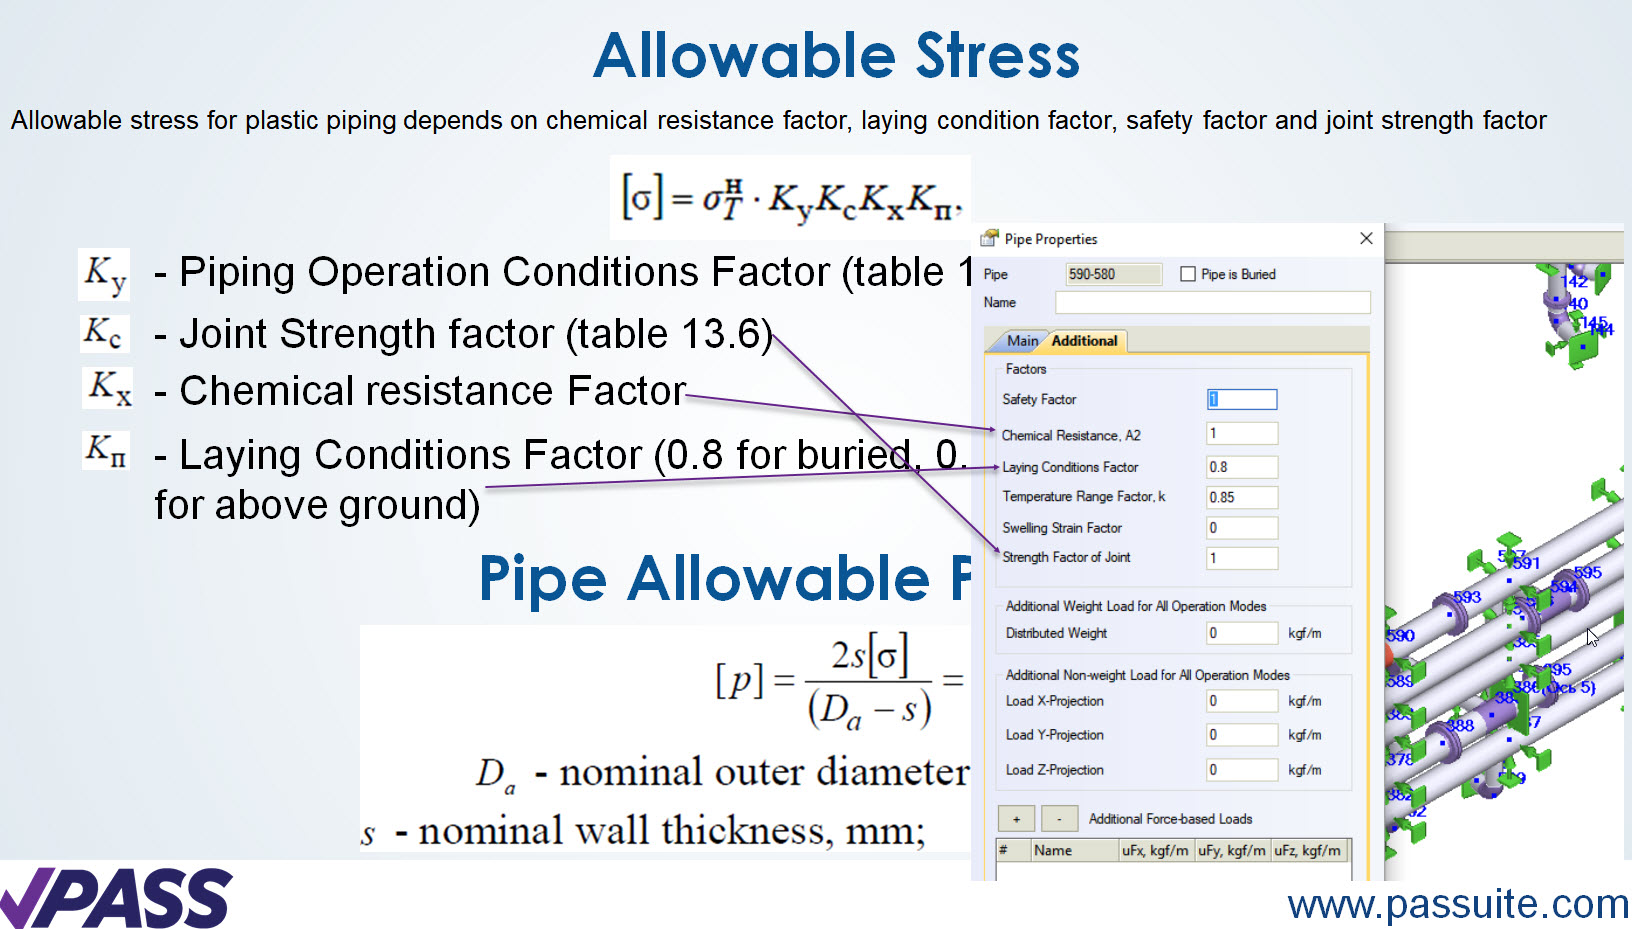 Stress Analysis of HDPE, PE-RT, PP-H, PP-R, PVC-C, PVDF Piping